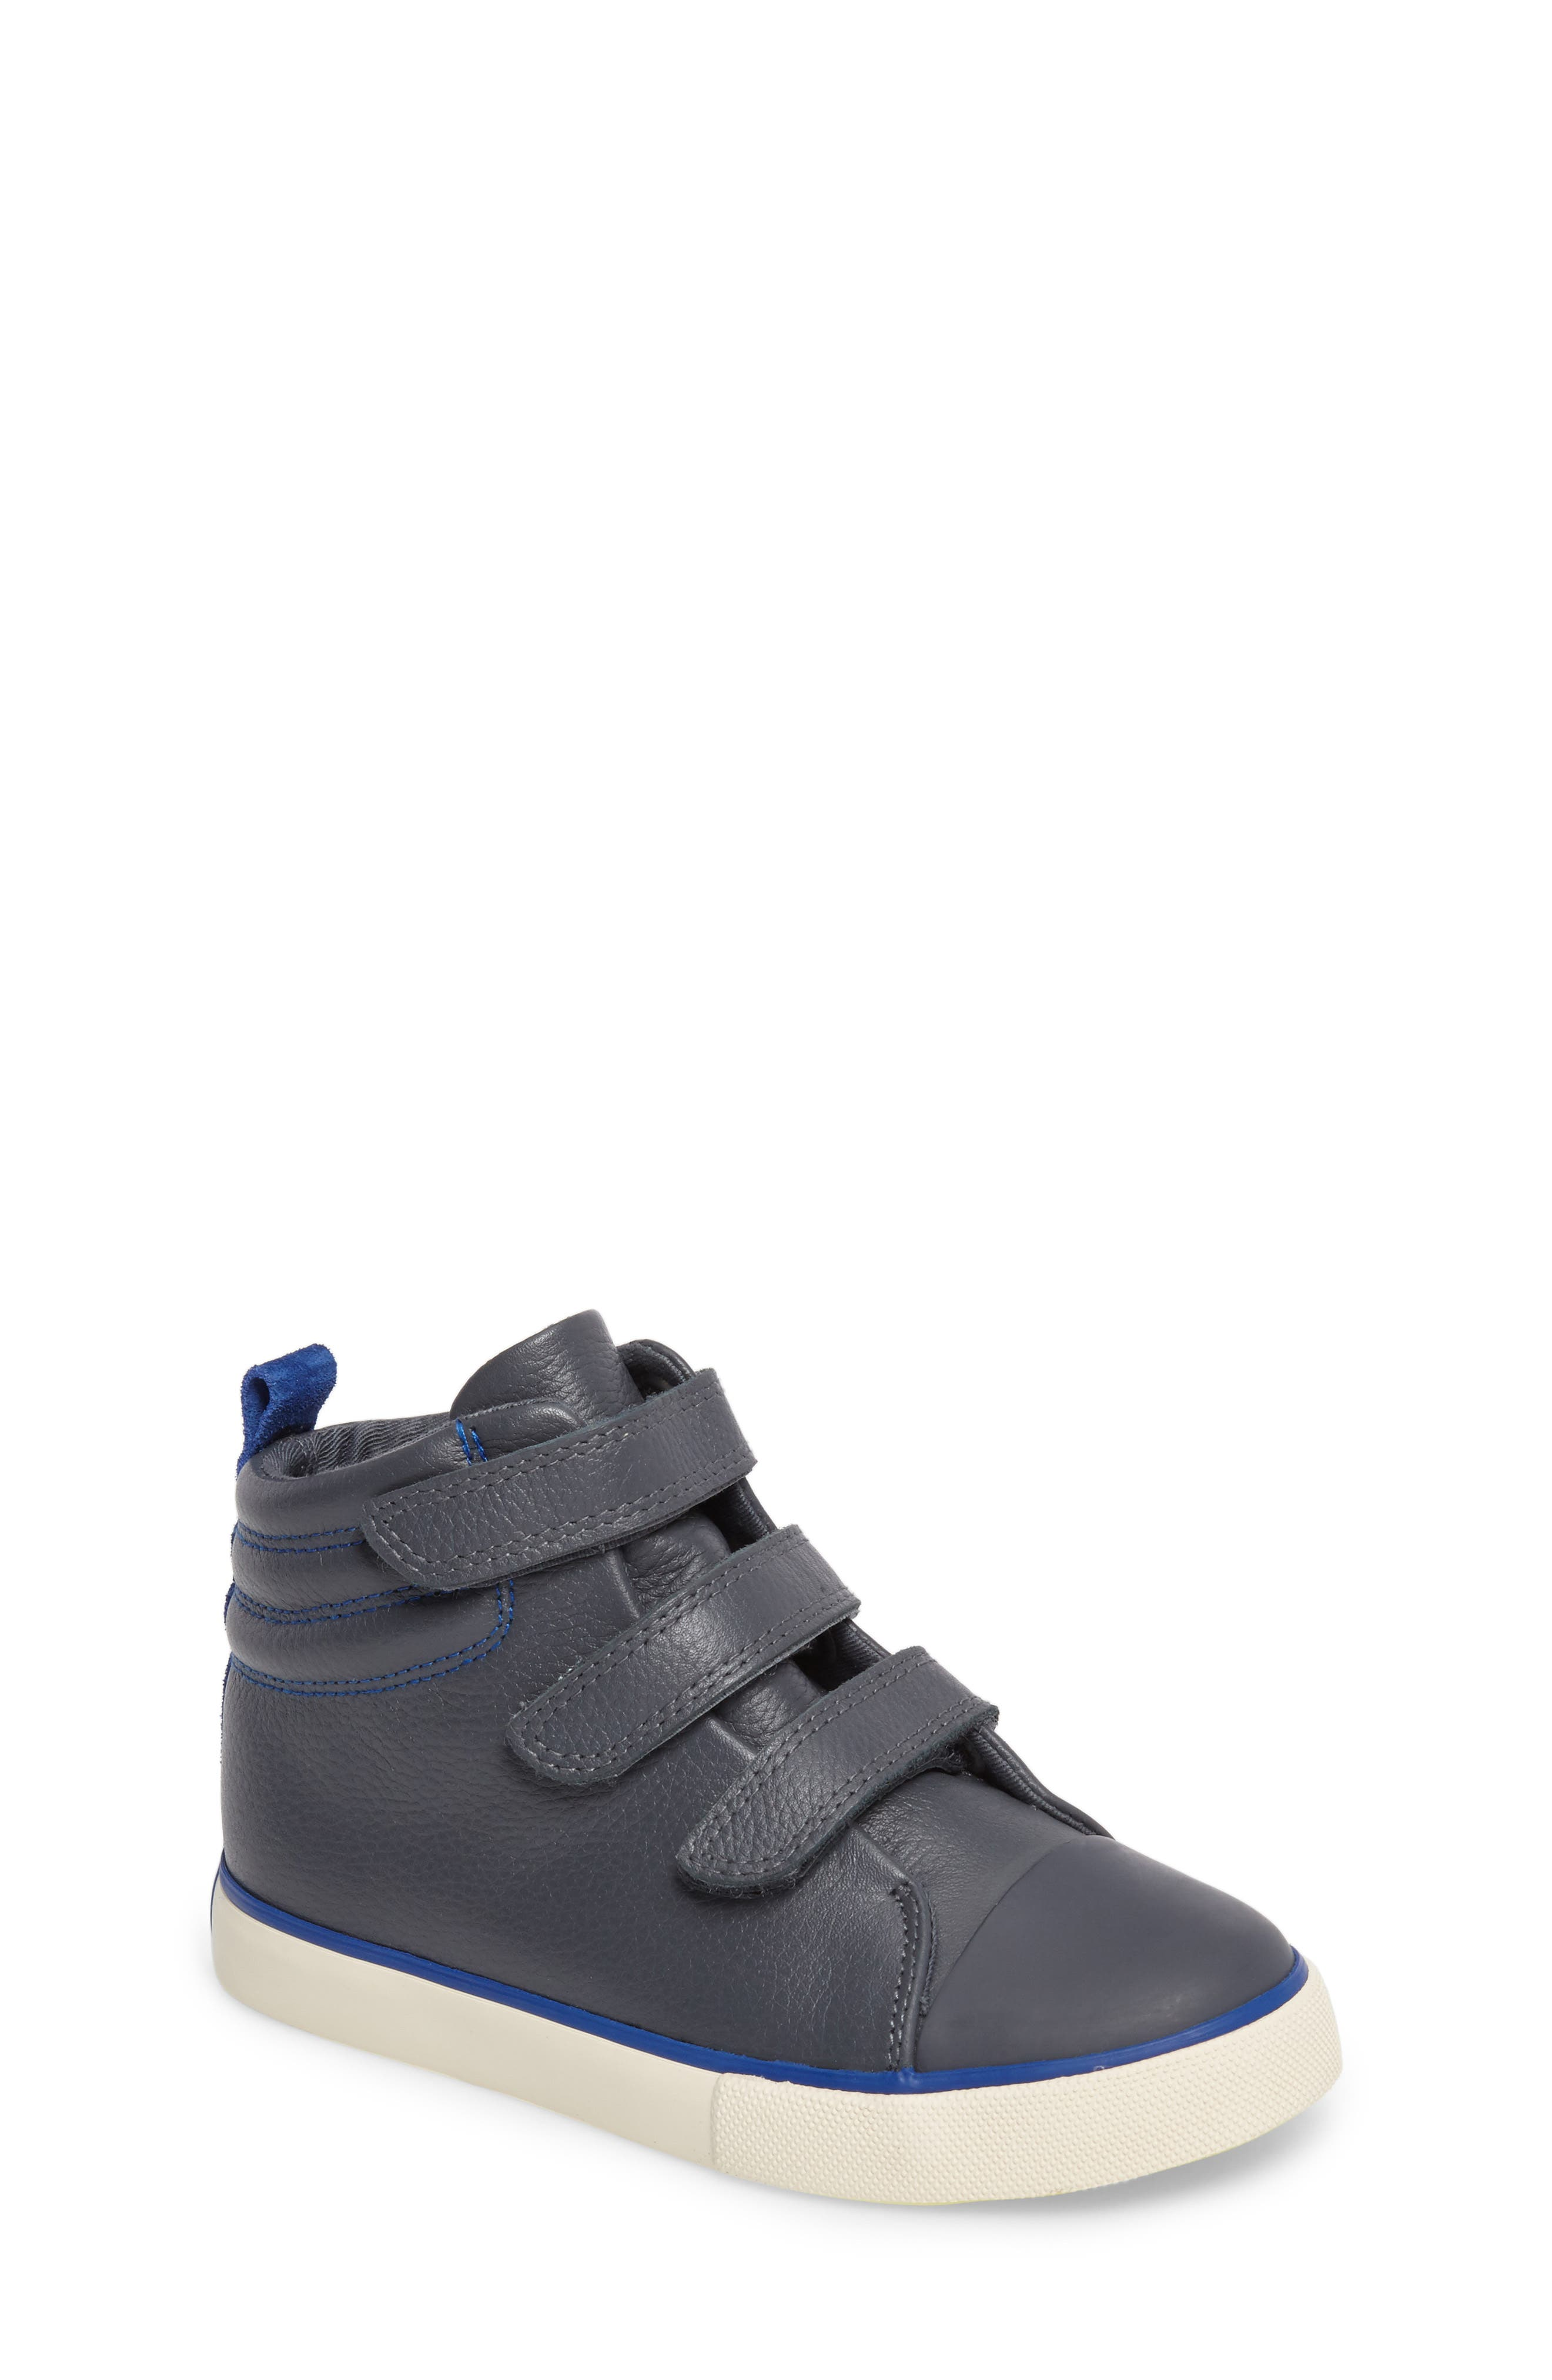 Main Image - Mini Boden High Top Sneaker (Toddler, Little Kid & Big Kid)